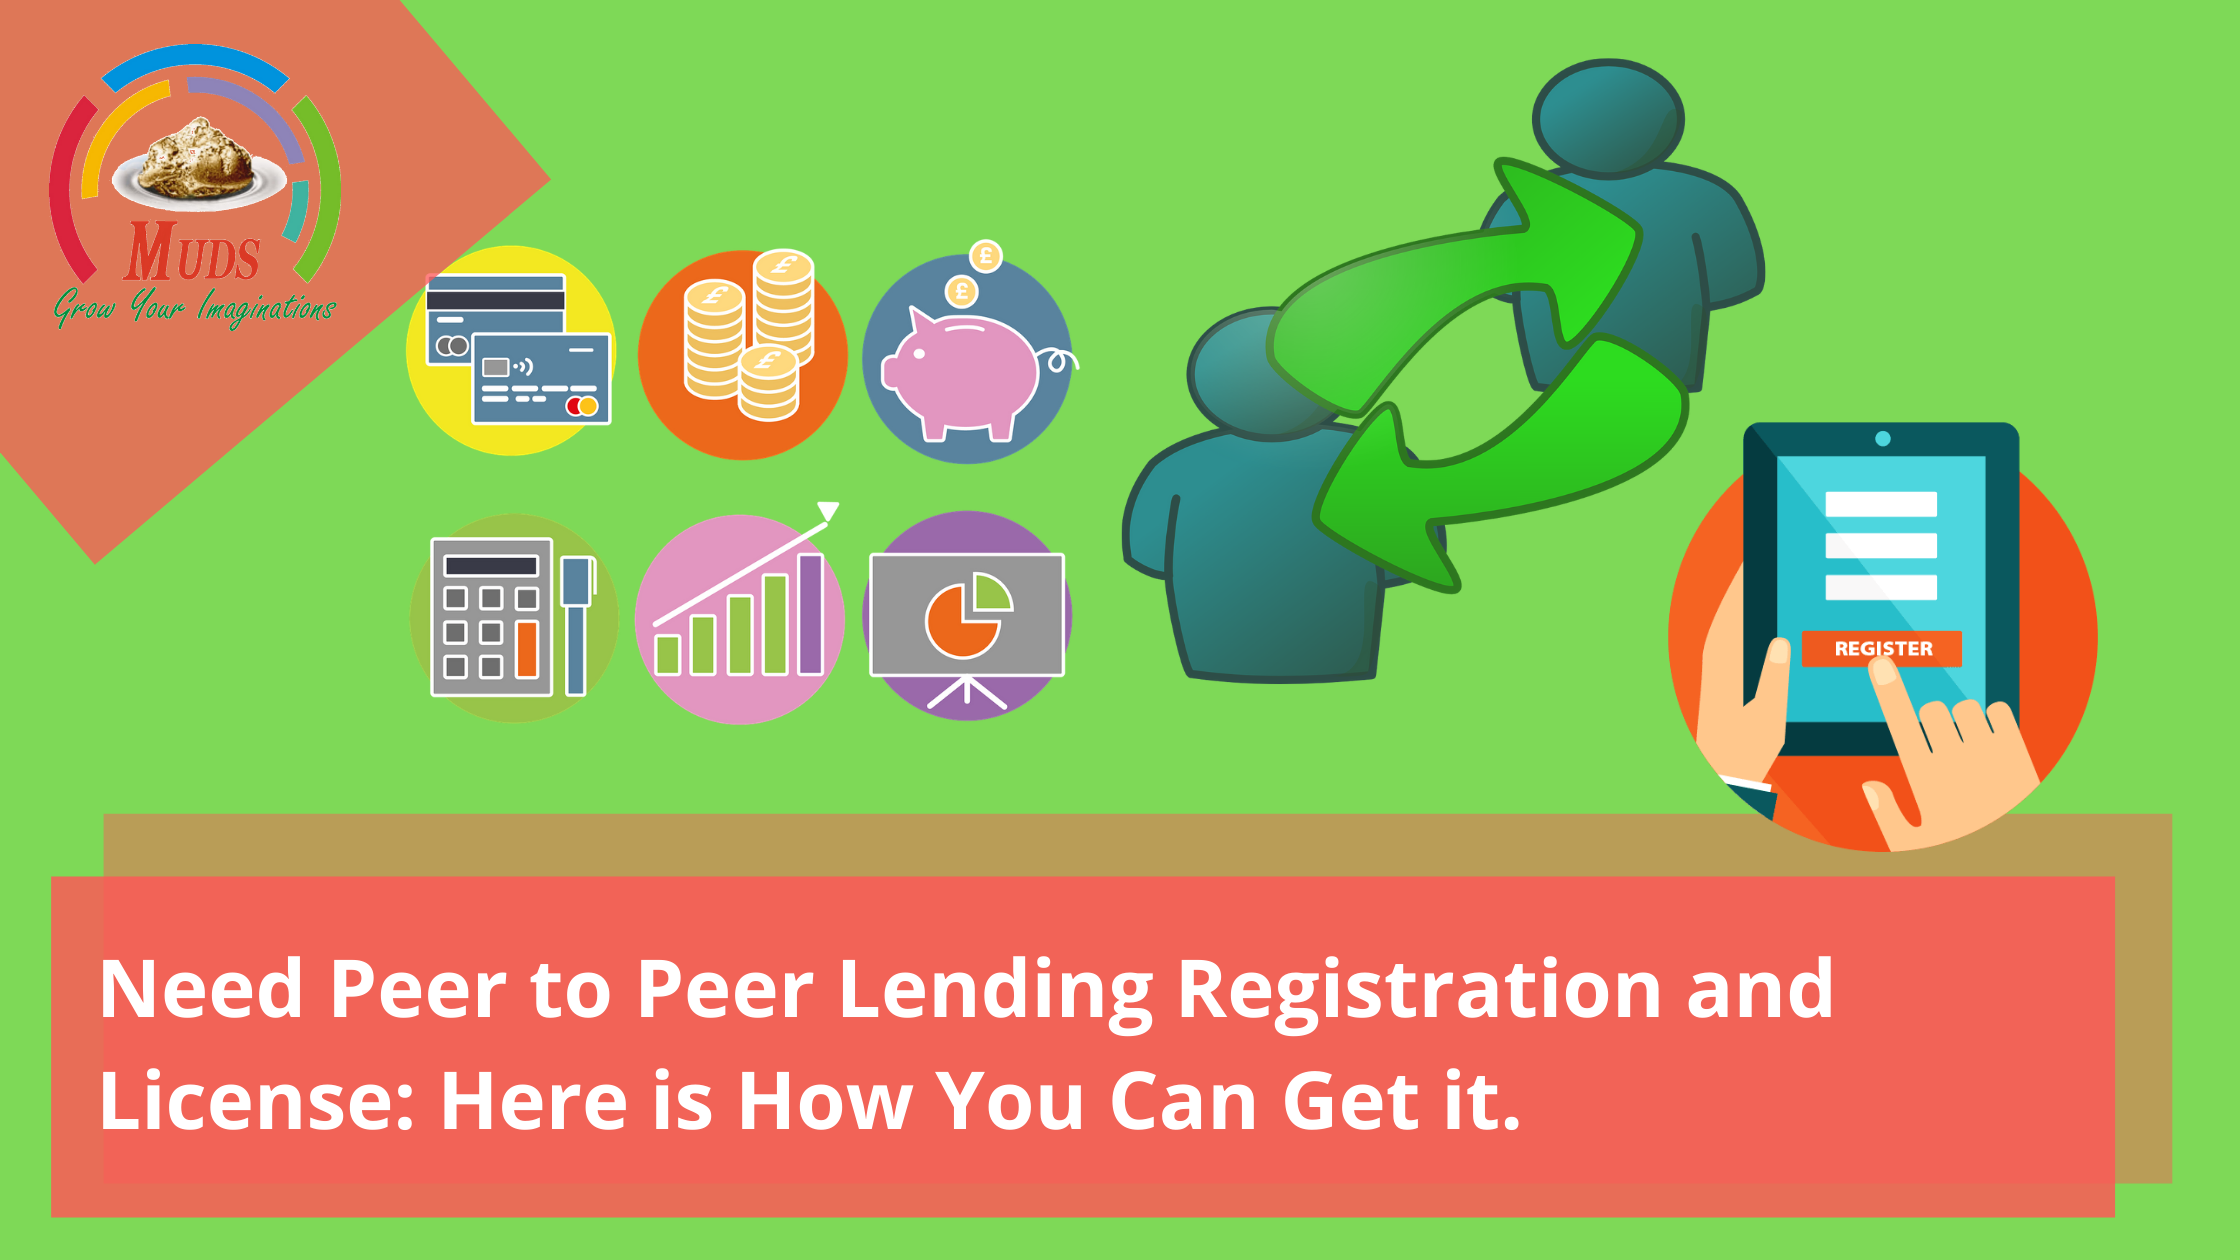 Need Peer to Peer Lending Registration and License